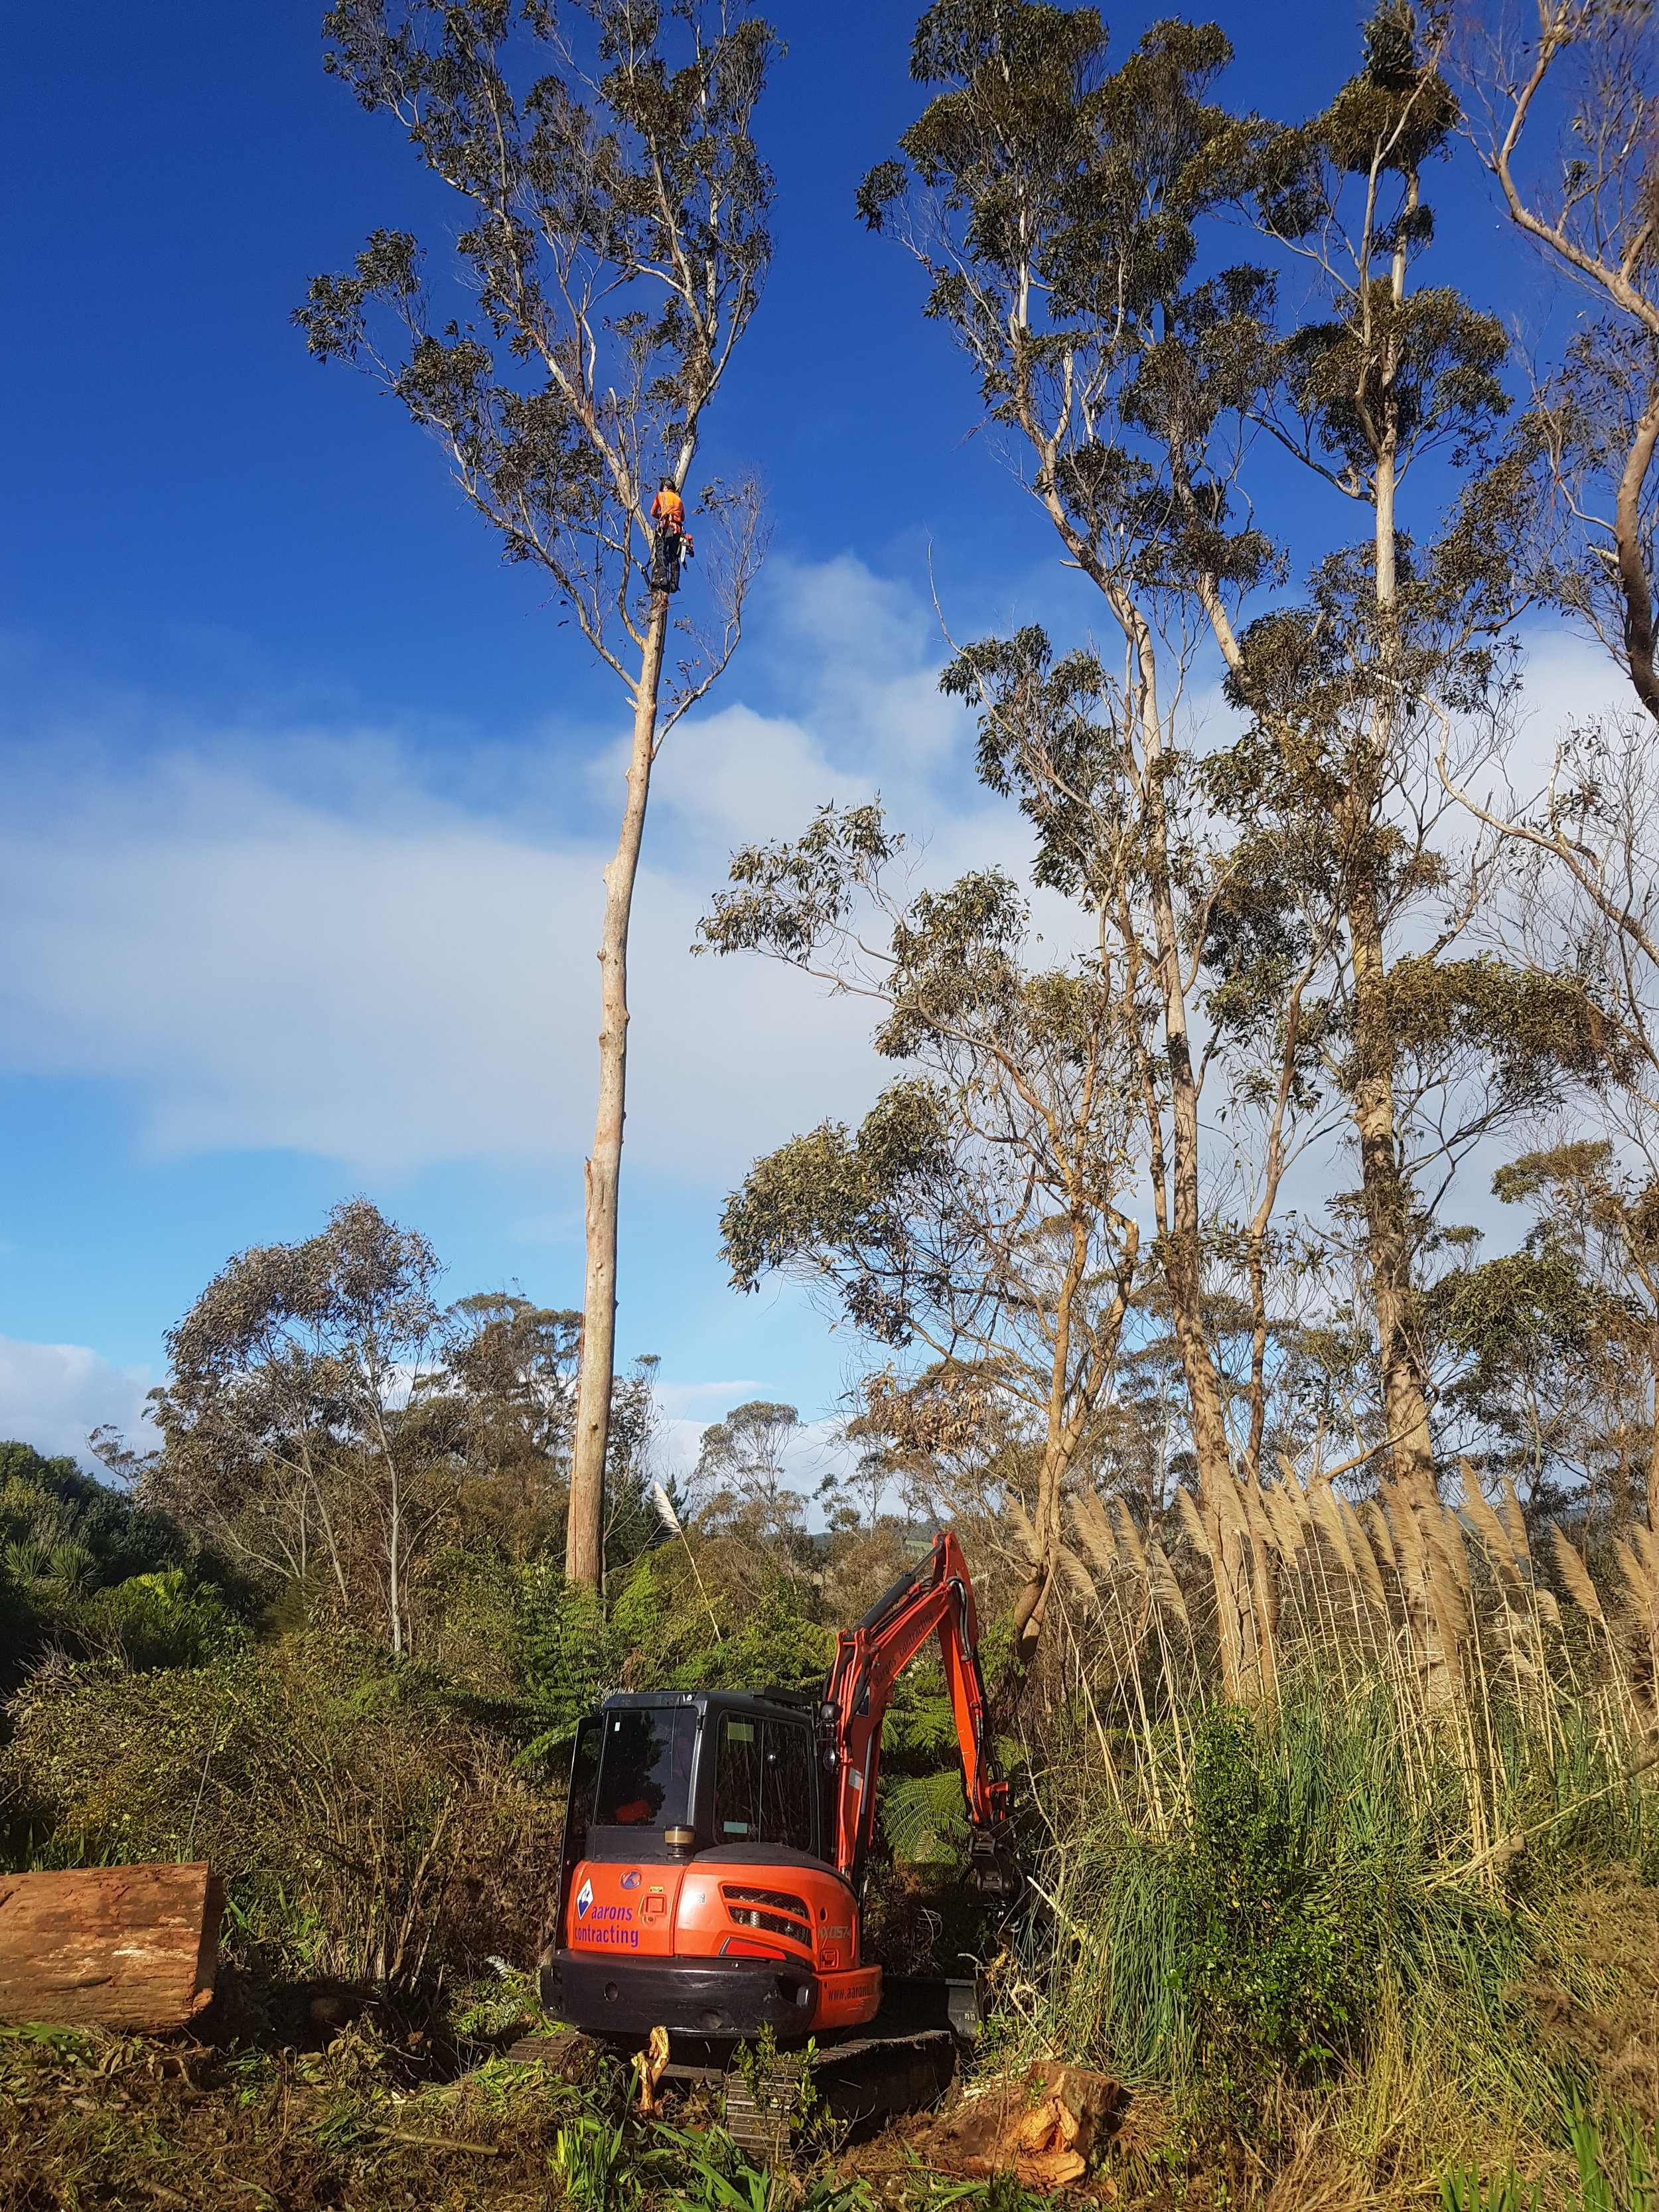 The trees were brought down in sections and then stacked using the digger